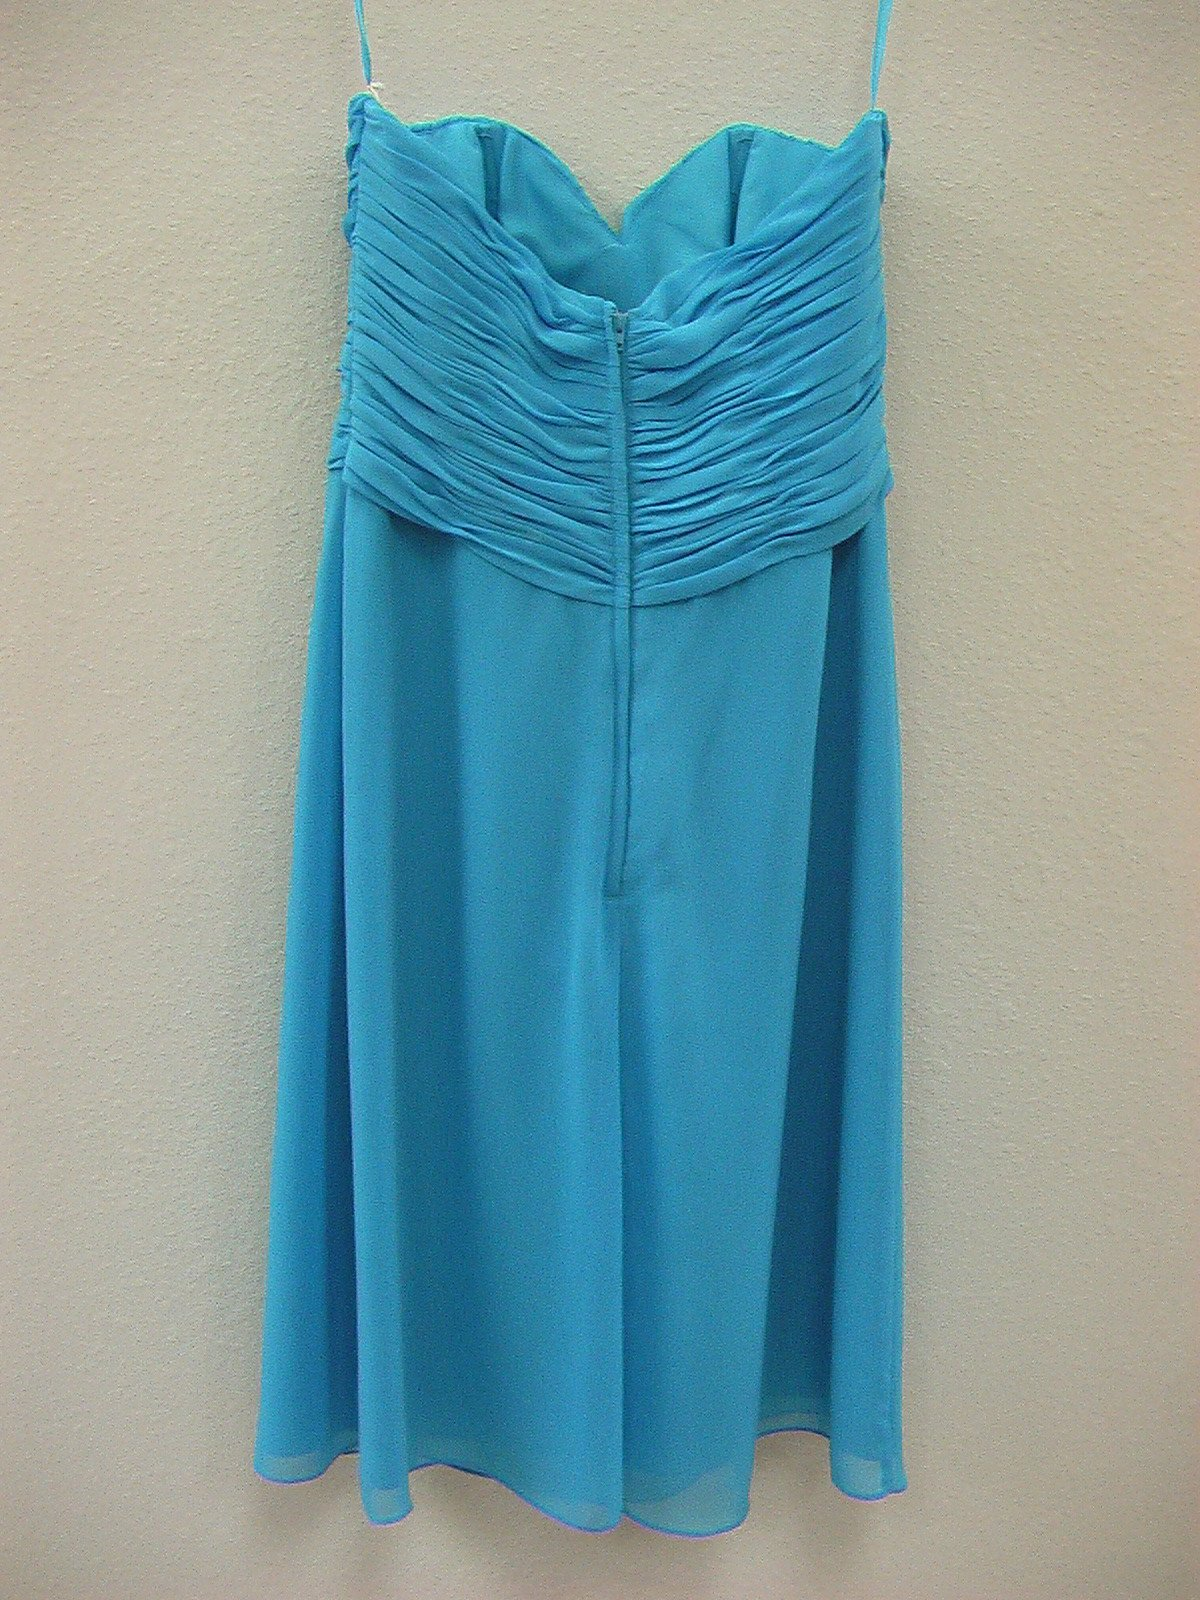 Allure 1251 Turquoise Size 10 In Stock Bridesmaid Dress - Tom's Bridal